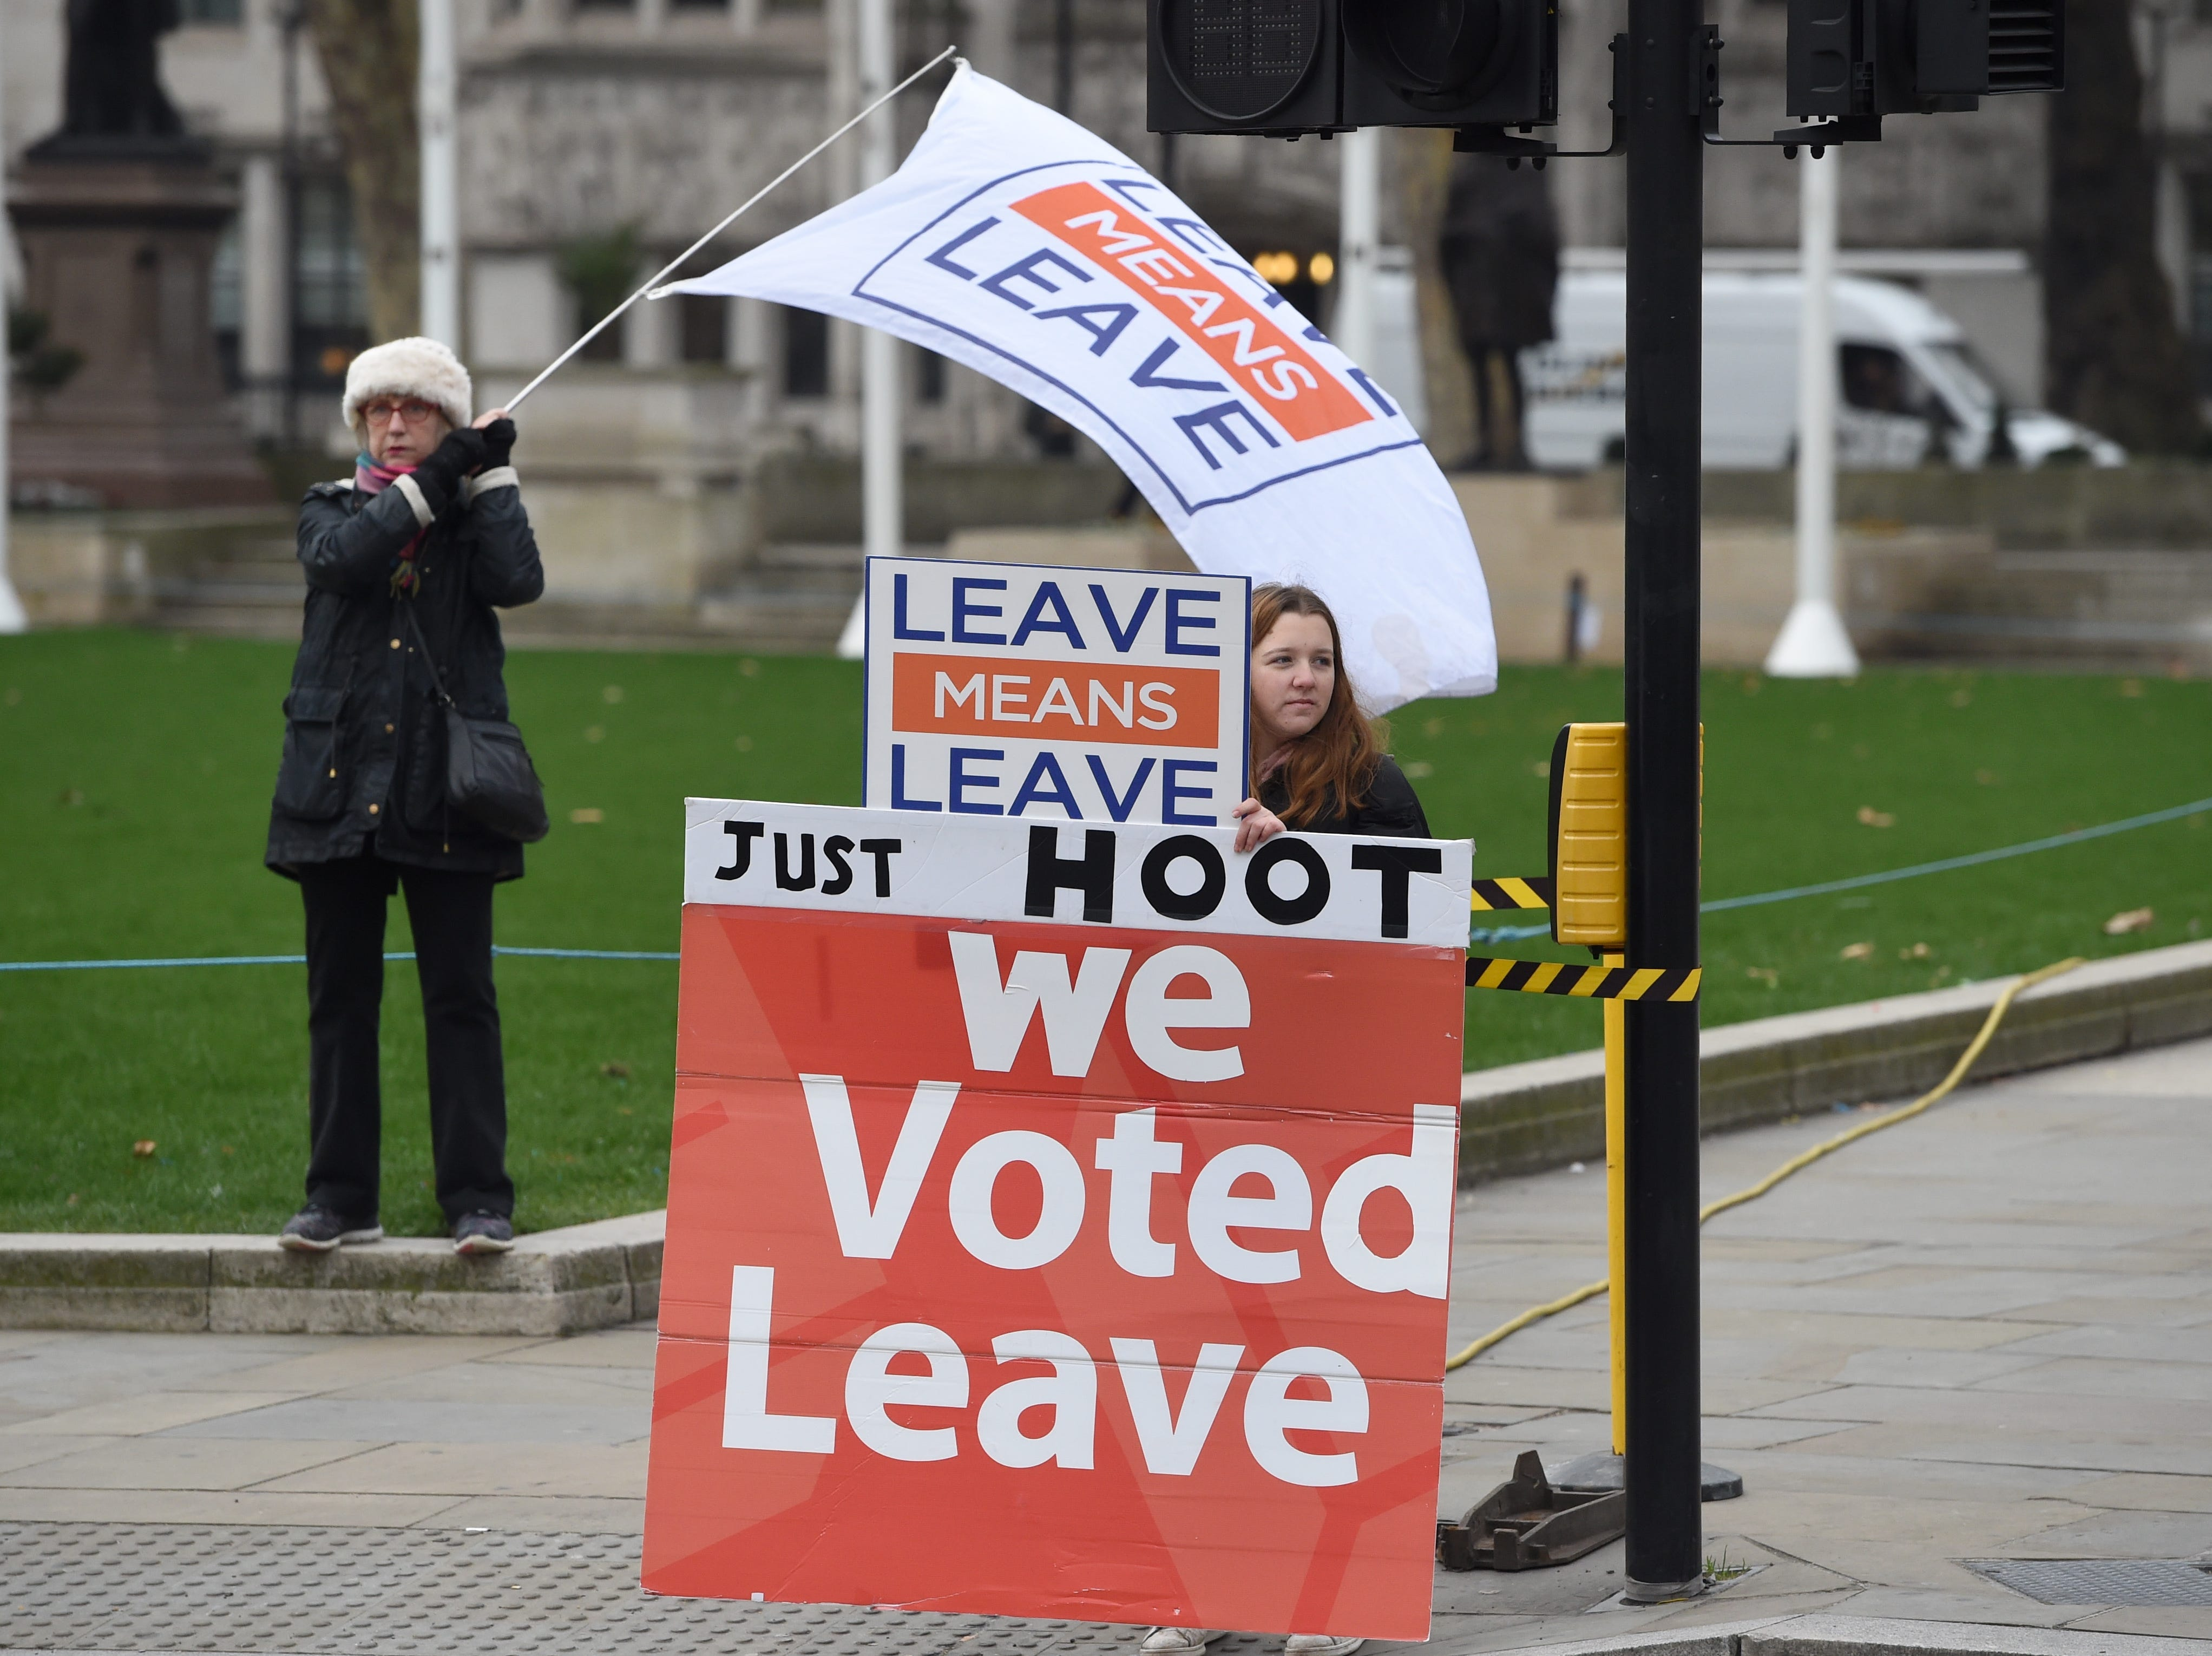 Pro Brexit supporters display signs outside the Houses of Parliament in Westminster in London, Britain on Jan. 10, 2019. MPs are debating Theresa May's Brexit plan a month after she postponed the original commons vote. Media reports state that Labour leader Jeremy Corbyn has confirmed his party members will vote against Prime Minister's May Brexit agreement and his Party will call for a General Election to 'break the deadlock' over Brexit. The meaningful vote on EU withdrawal agreement will be held on January 15.